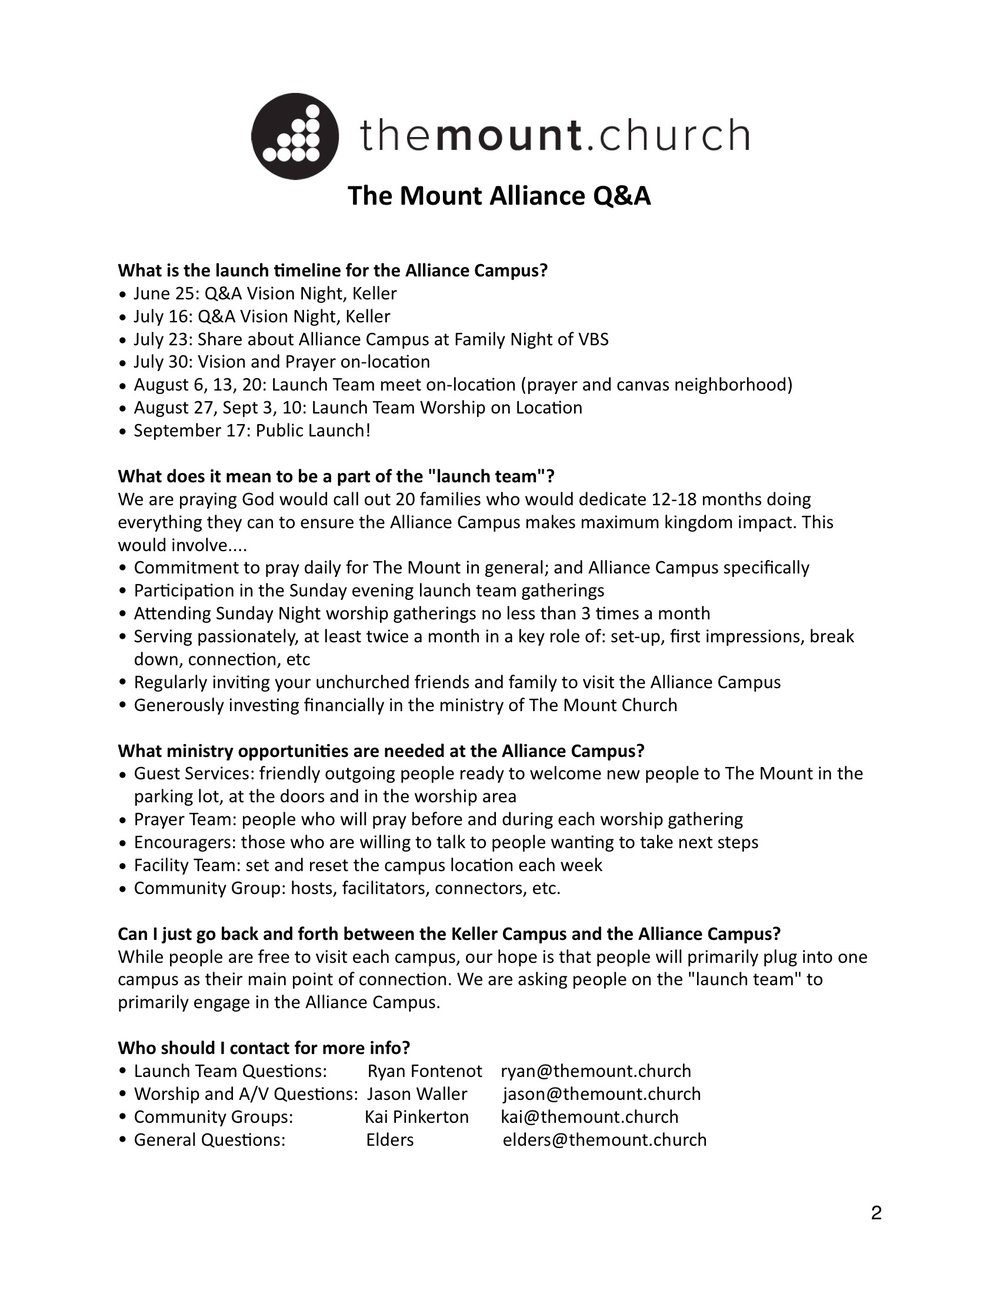 Alliance Q&A,pg 2 - CLICK IMAGE TO ENLARGE